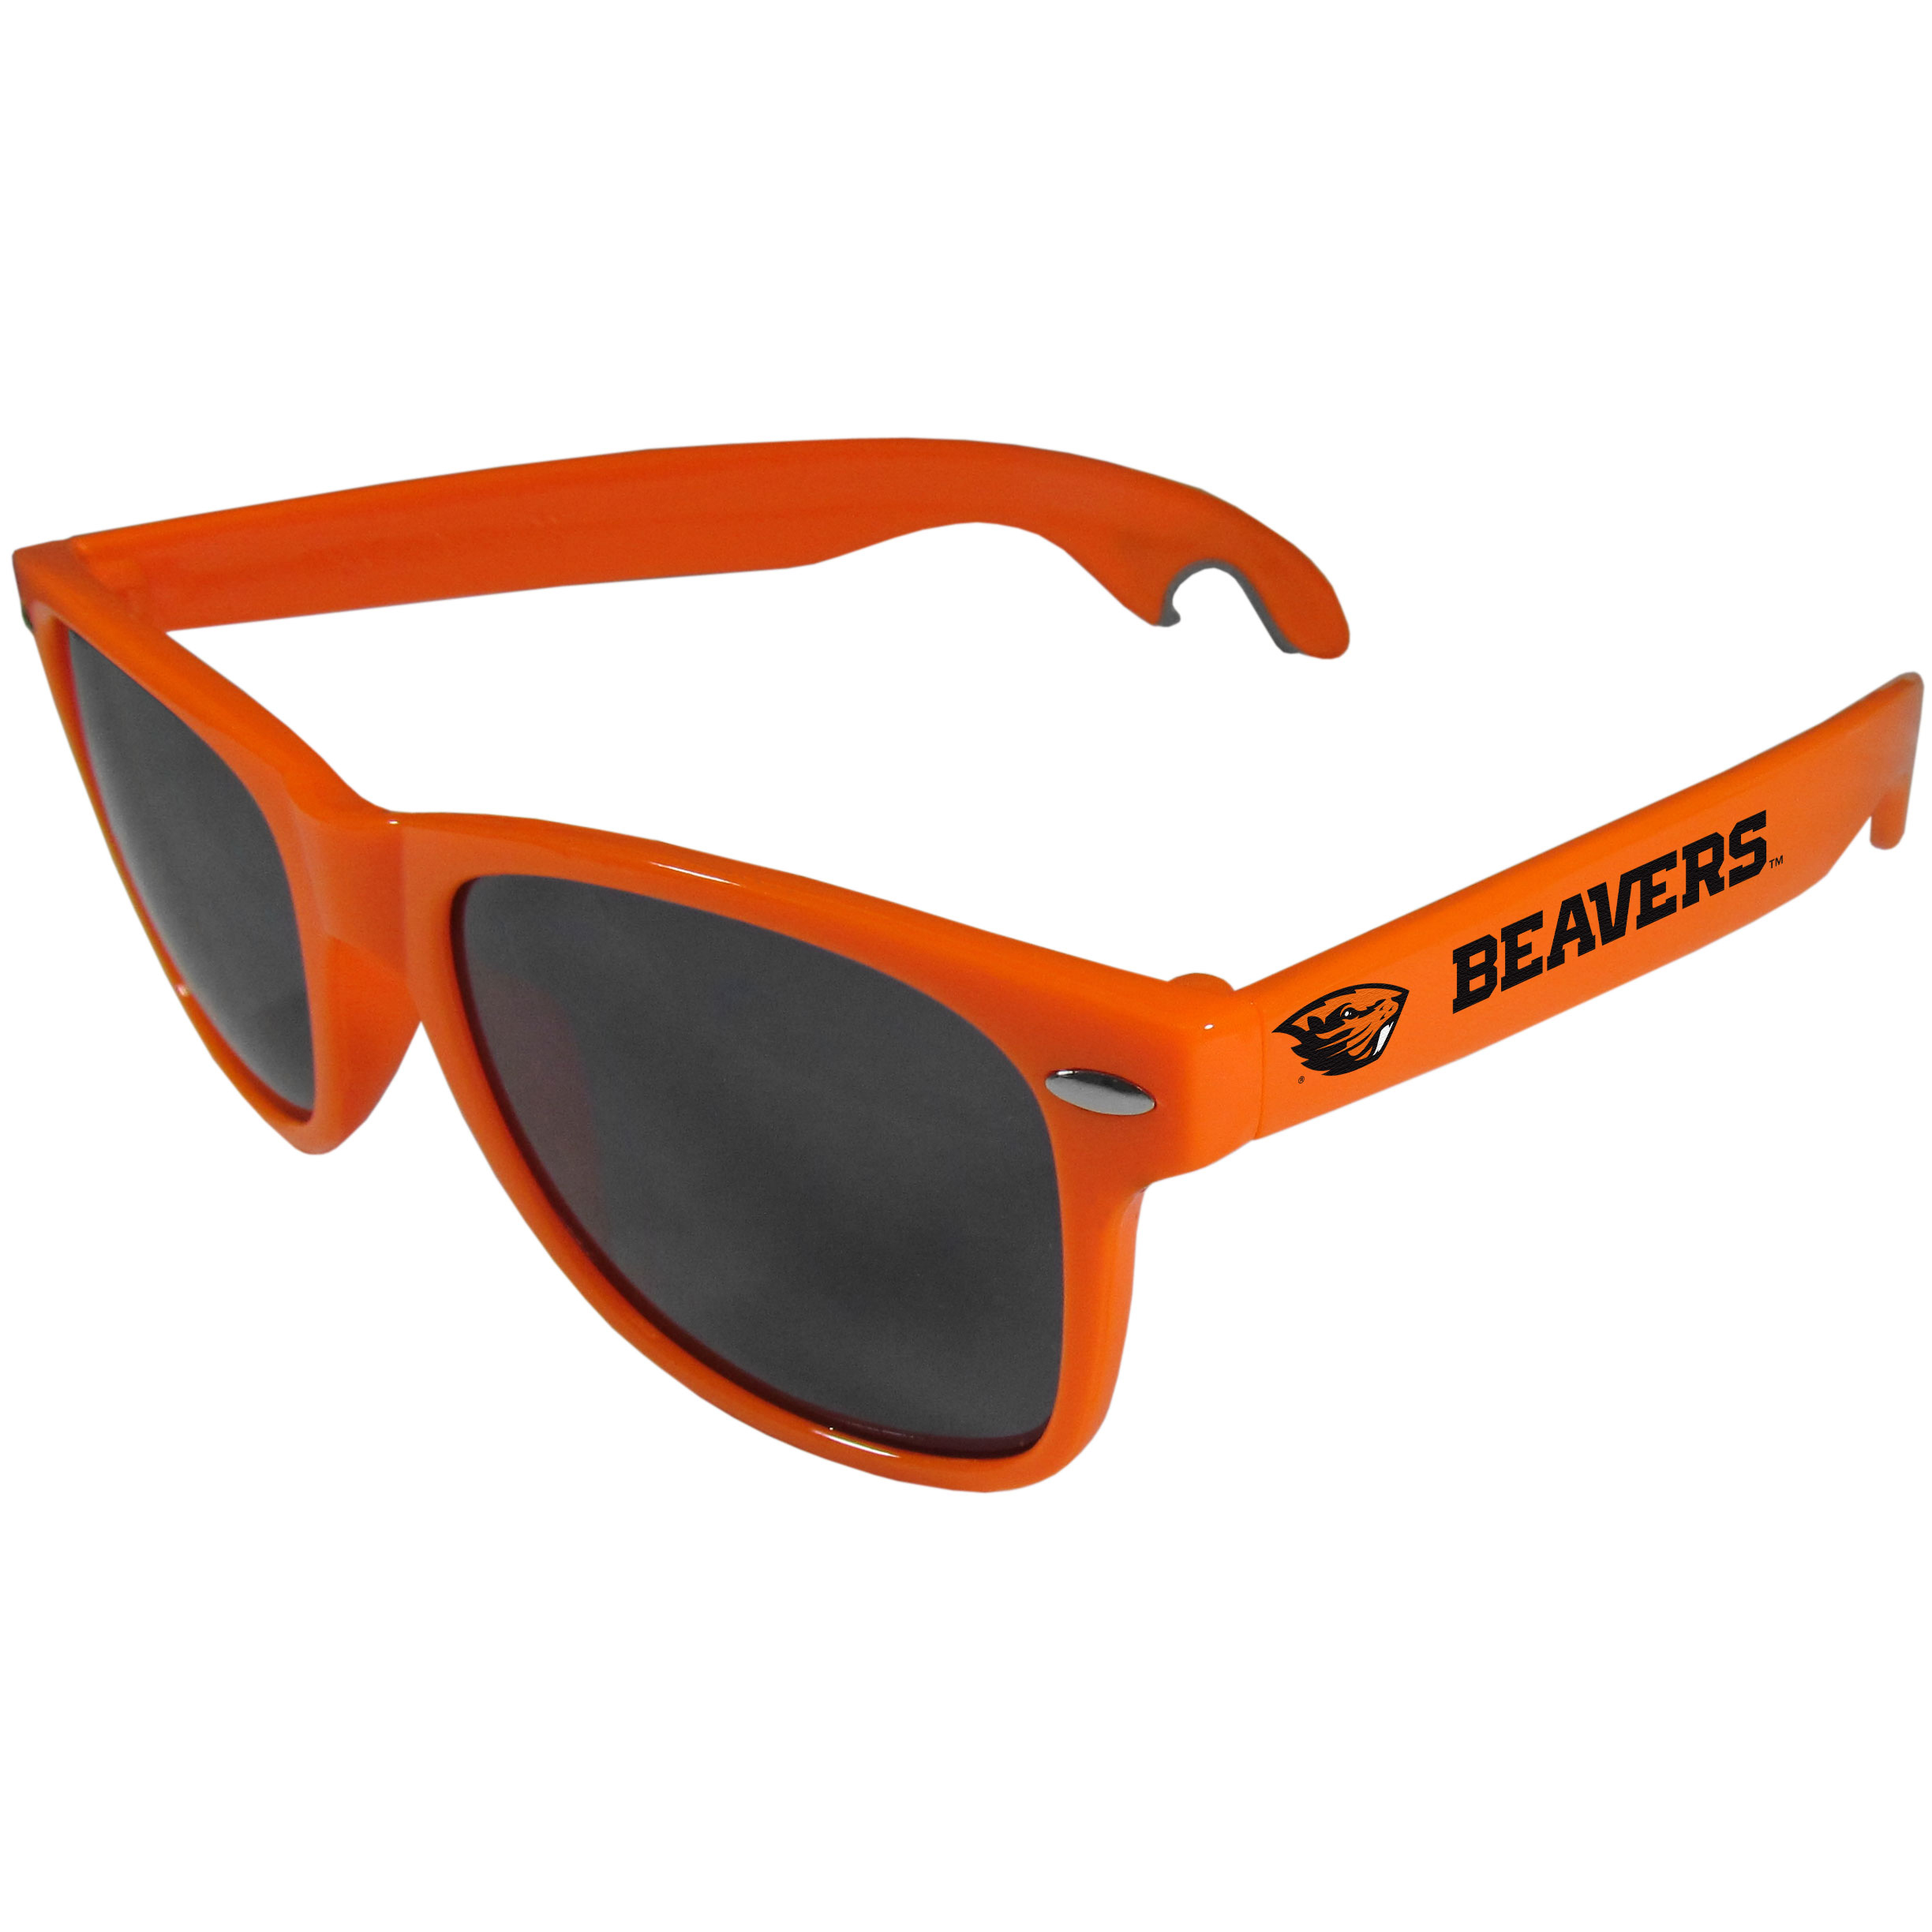 Oregon St. Beavers Beachfarer Bottle Opener Sunglasses, Orange - Seriously, these sunglasses open bottles! Keep the party going with these amazing Oregon St. Beavers bottle opener sunglasses. The stylish retro frames feature team designs on the arms and functional bottle openers on the end of the arms. Whether you are at the beach or having a backyard BBQ on game day, these shades will keep your eyes protected with 100% UVA/UVB protection and keep you hydrated with the handy bottle opener arms.